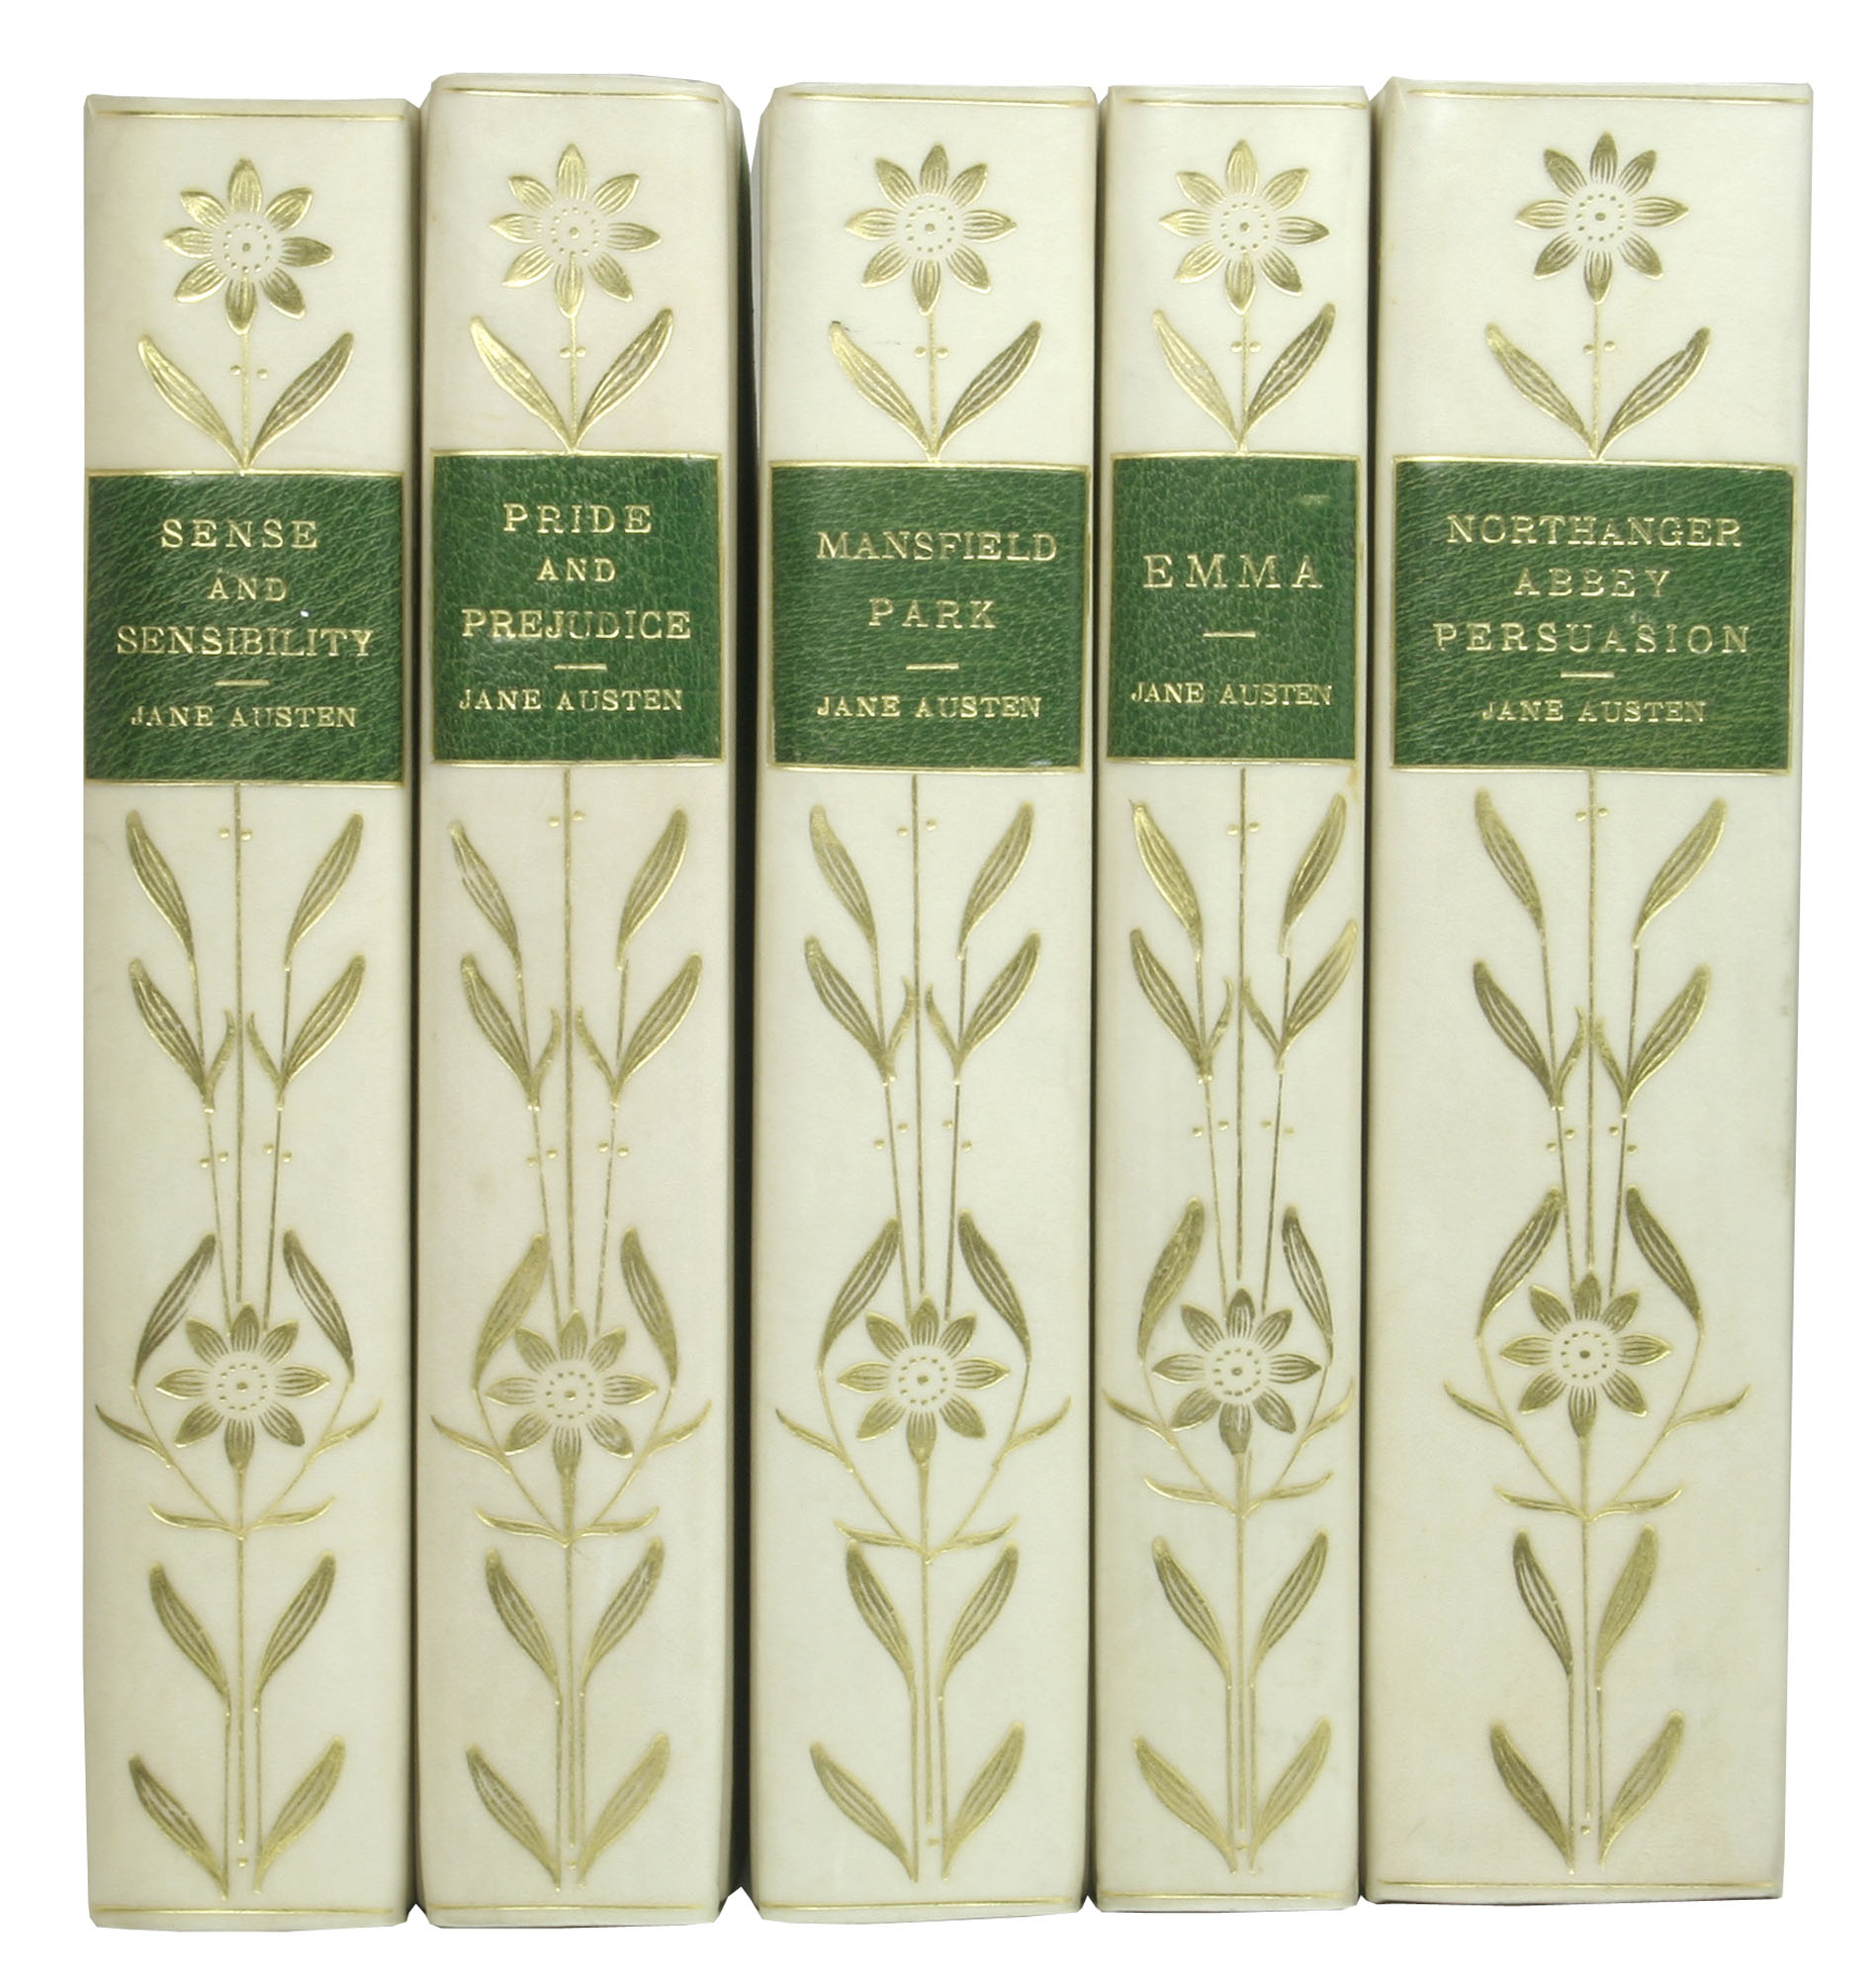 an analysis of the works by jane austen Emma study guide contains a biography of jane austen, literature essays, a complete e-text, quiz questions, major themes, characters, and a full summary and analysis.